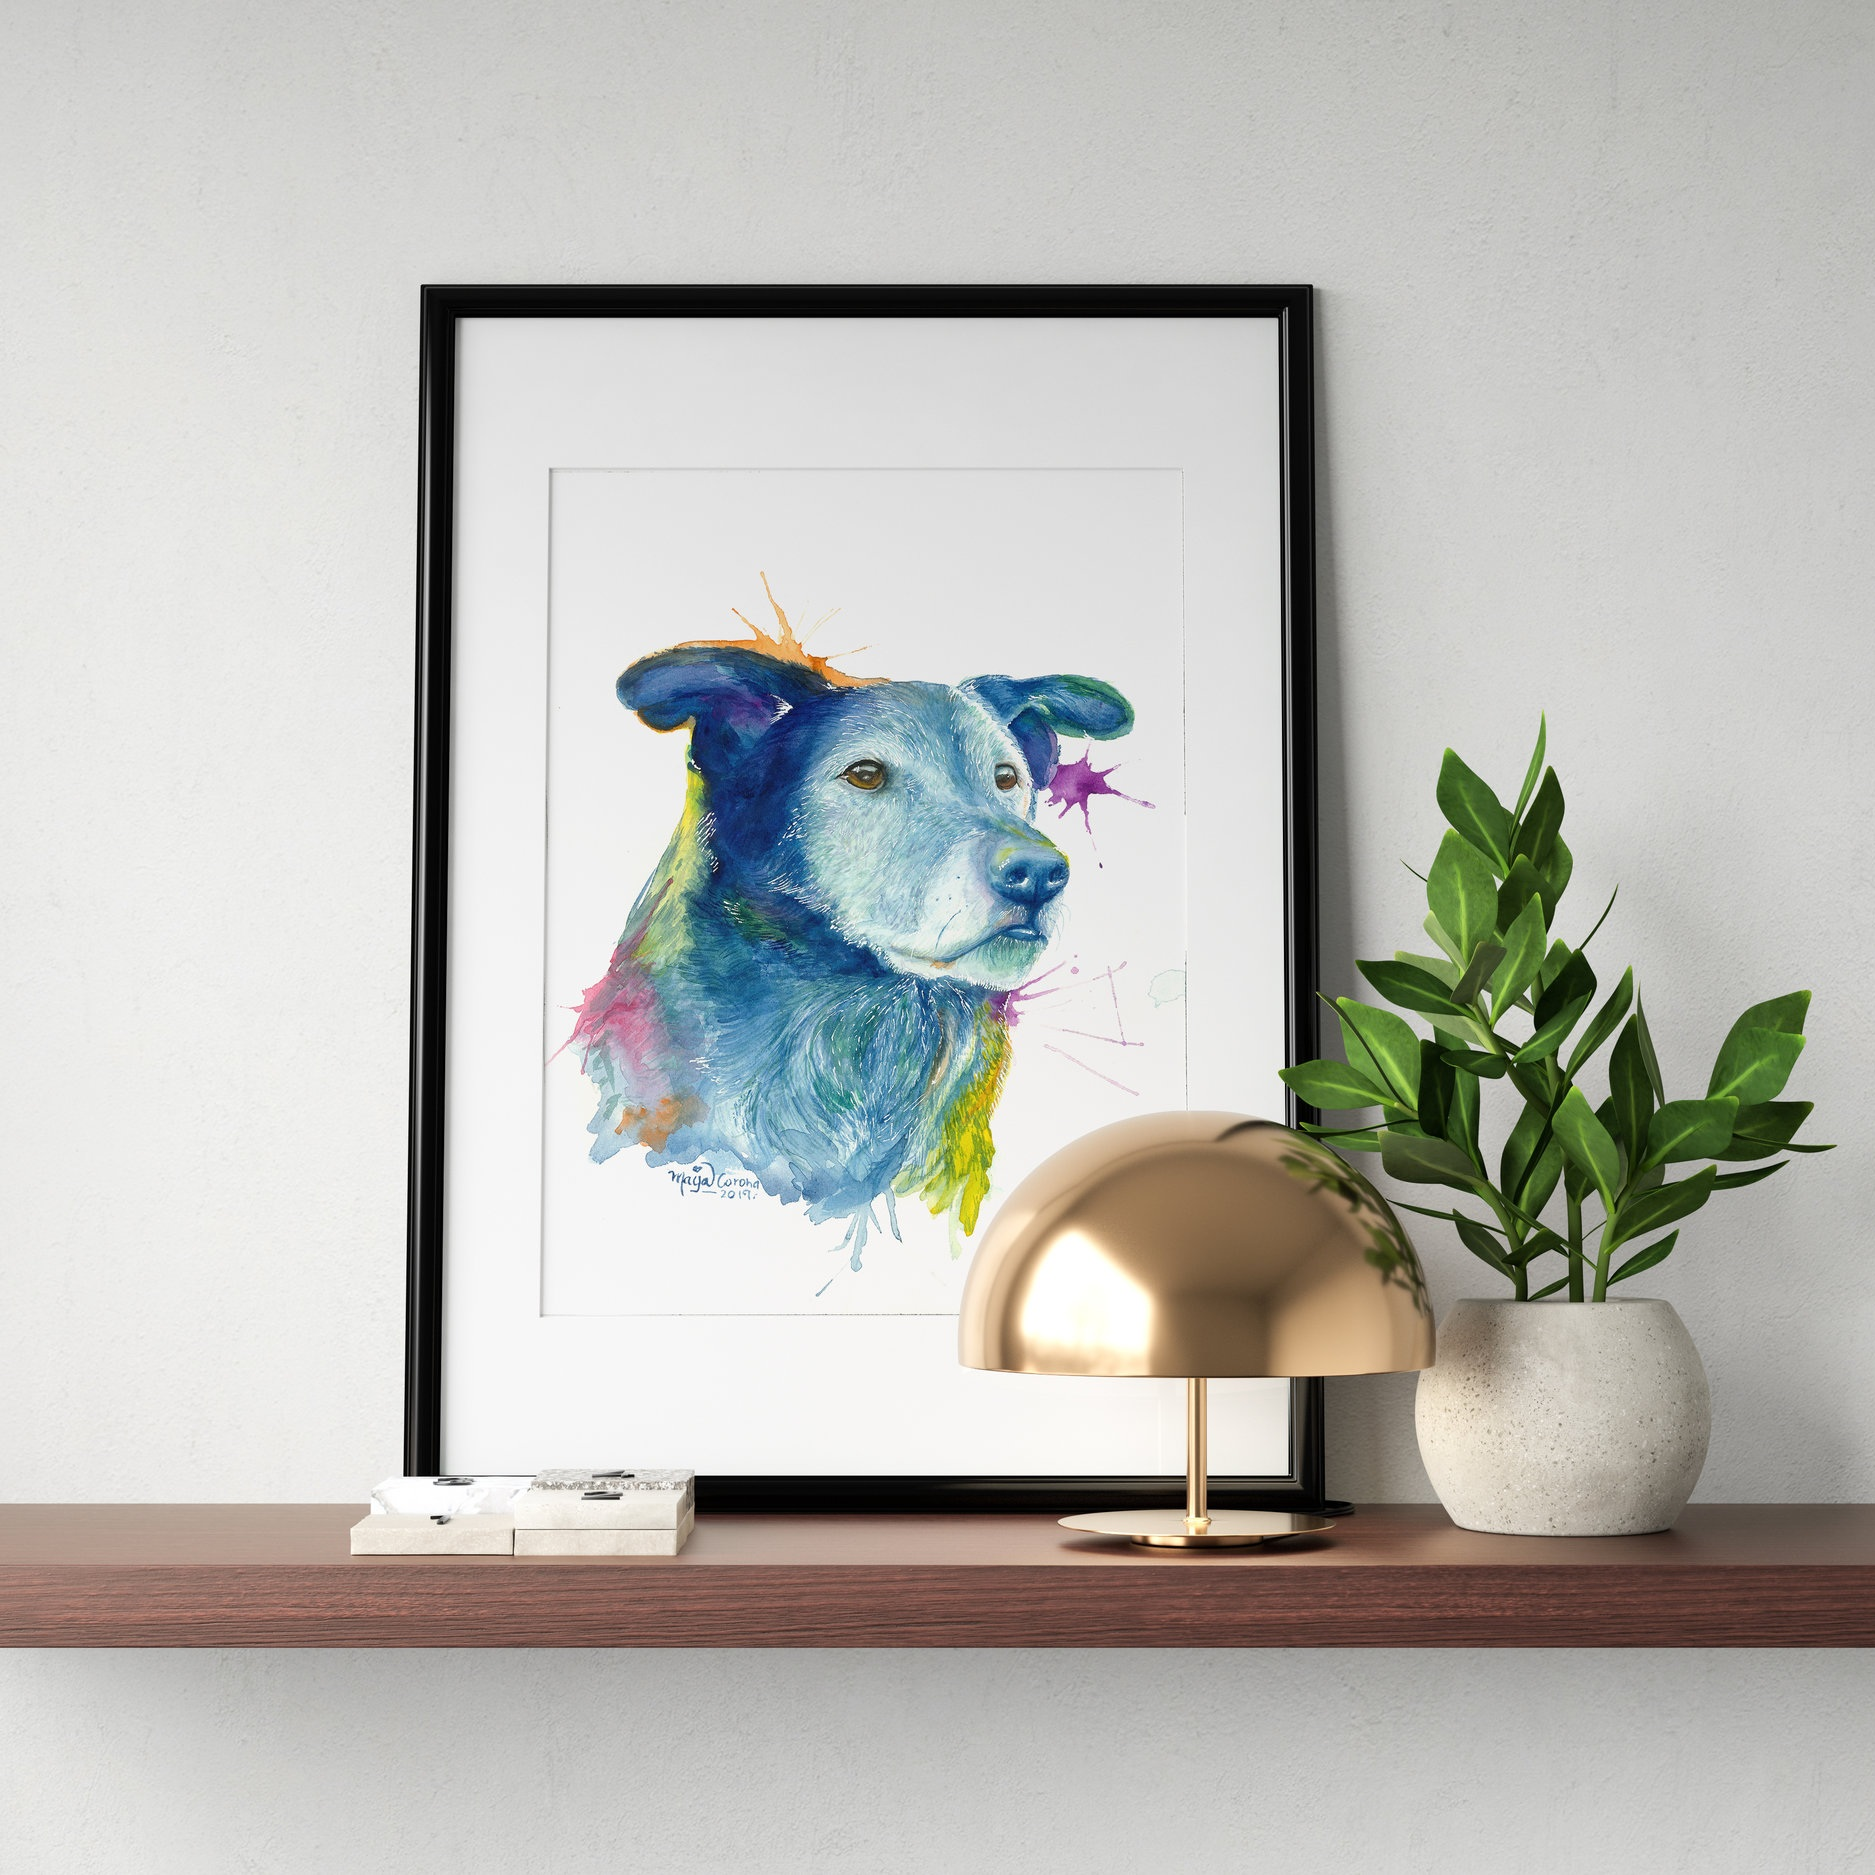 Déjà - ✰✰✰✰✰The talent Maya has is immeasurable! The details and colours of her paintings are so incredible! I highly recommend her art, whether it's a custom piece or one of her prints as a gift(or for yourself)... you will not be disappointed 👍—Kris Stanley, Calgary AB - Canada